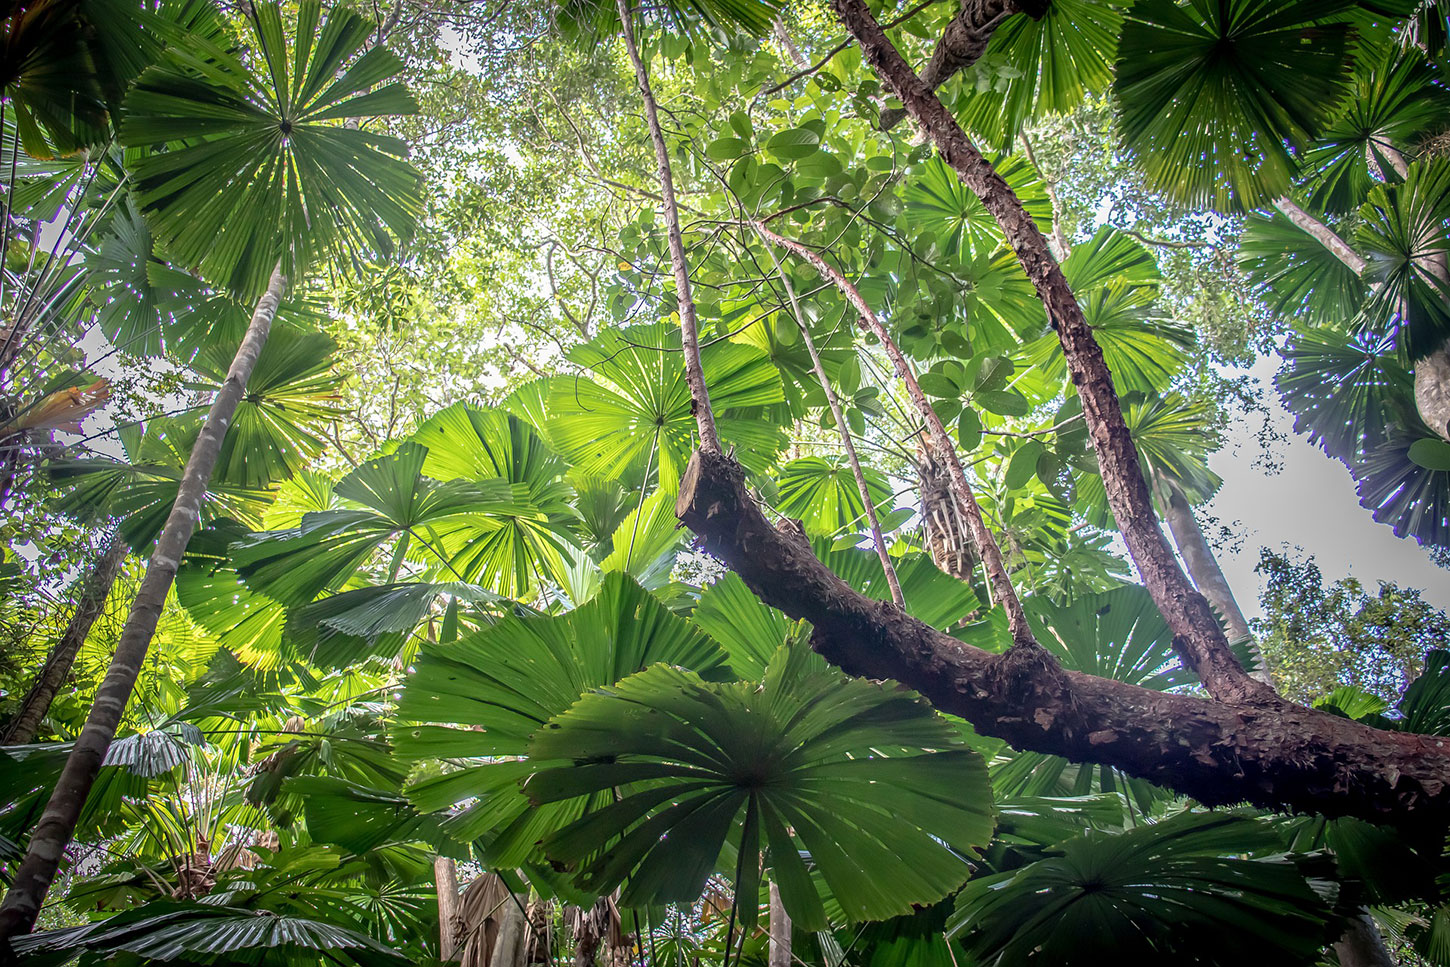 Canopy of the Daintree Rainforest